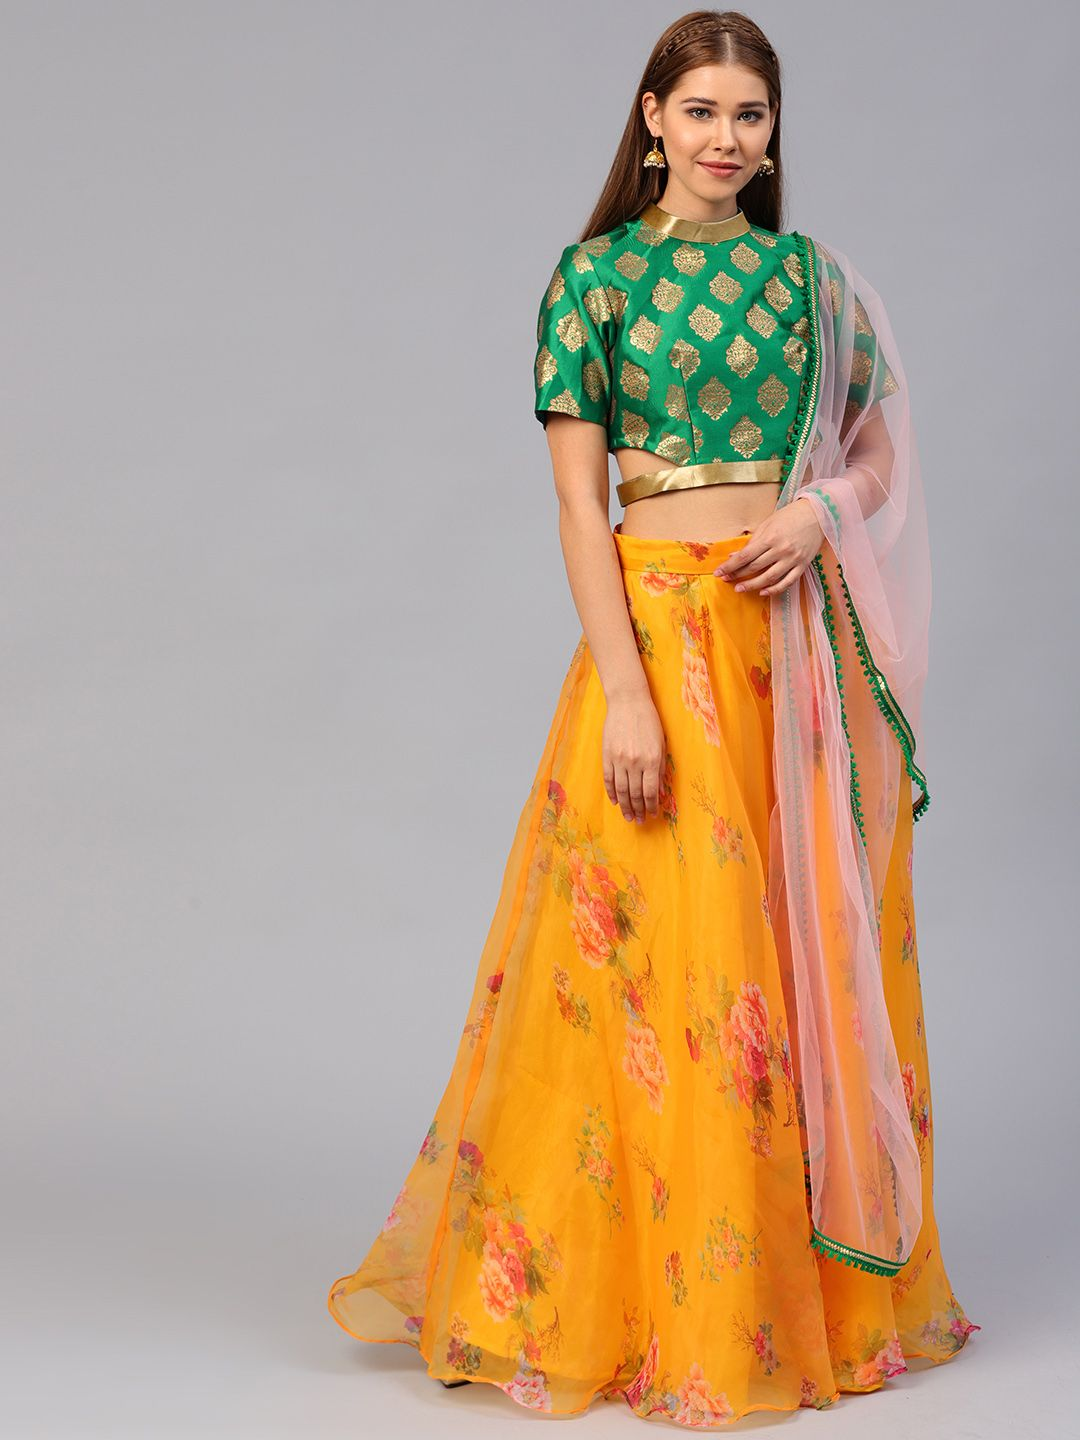 08a6faa232f Inddus Mustard Yellow   Green Semi-Stitched Lehenga   Unstitched Blouse  with Dupatta